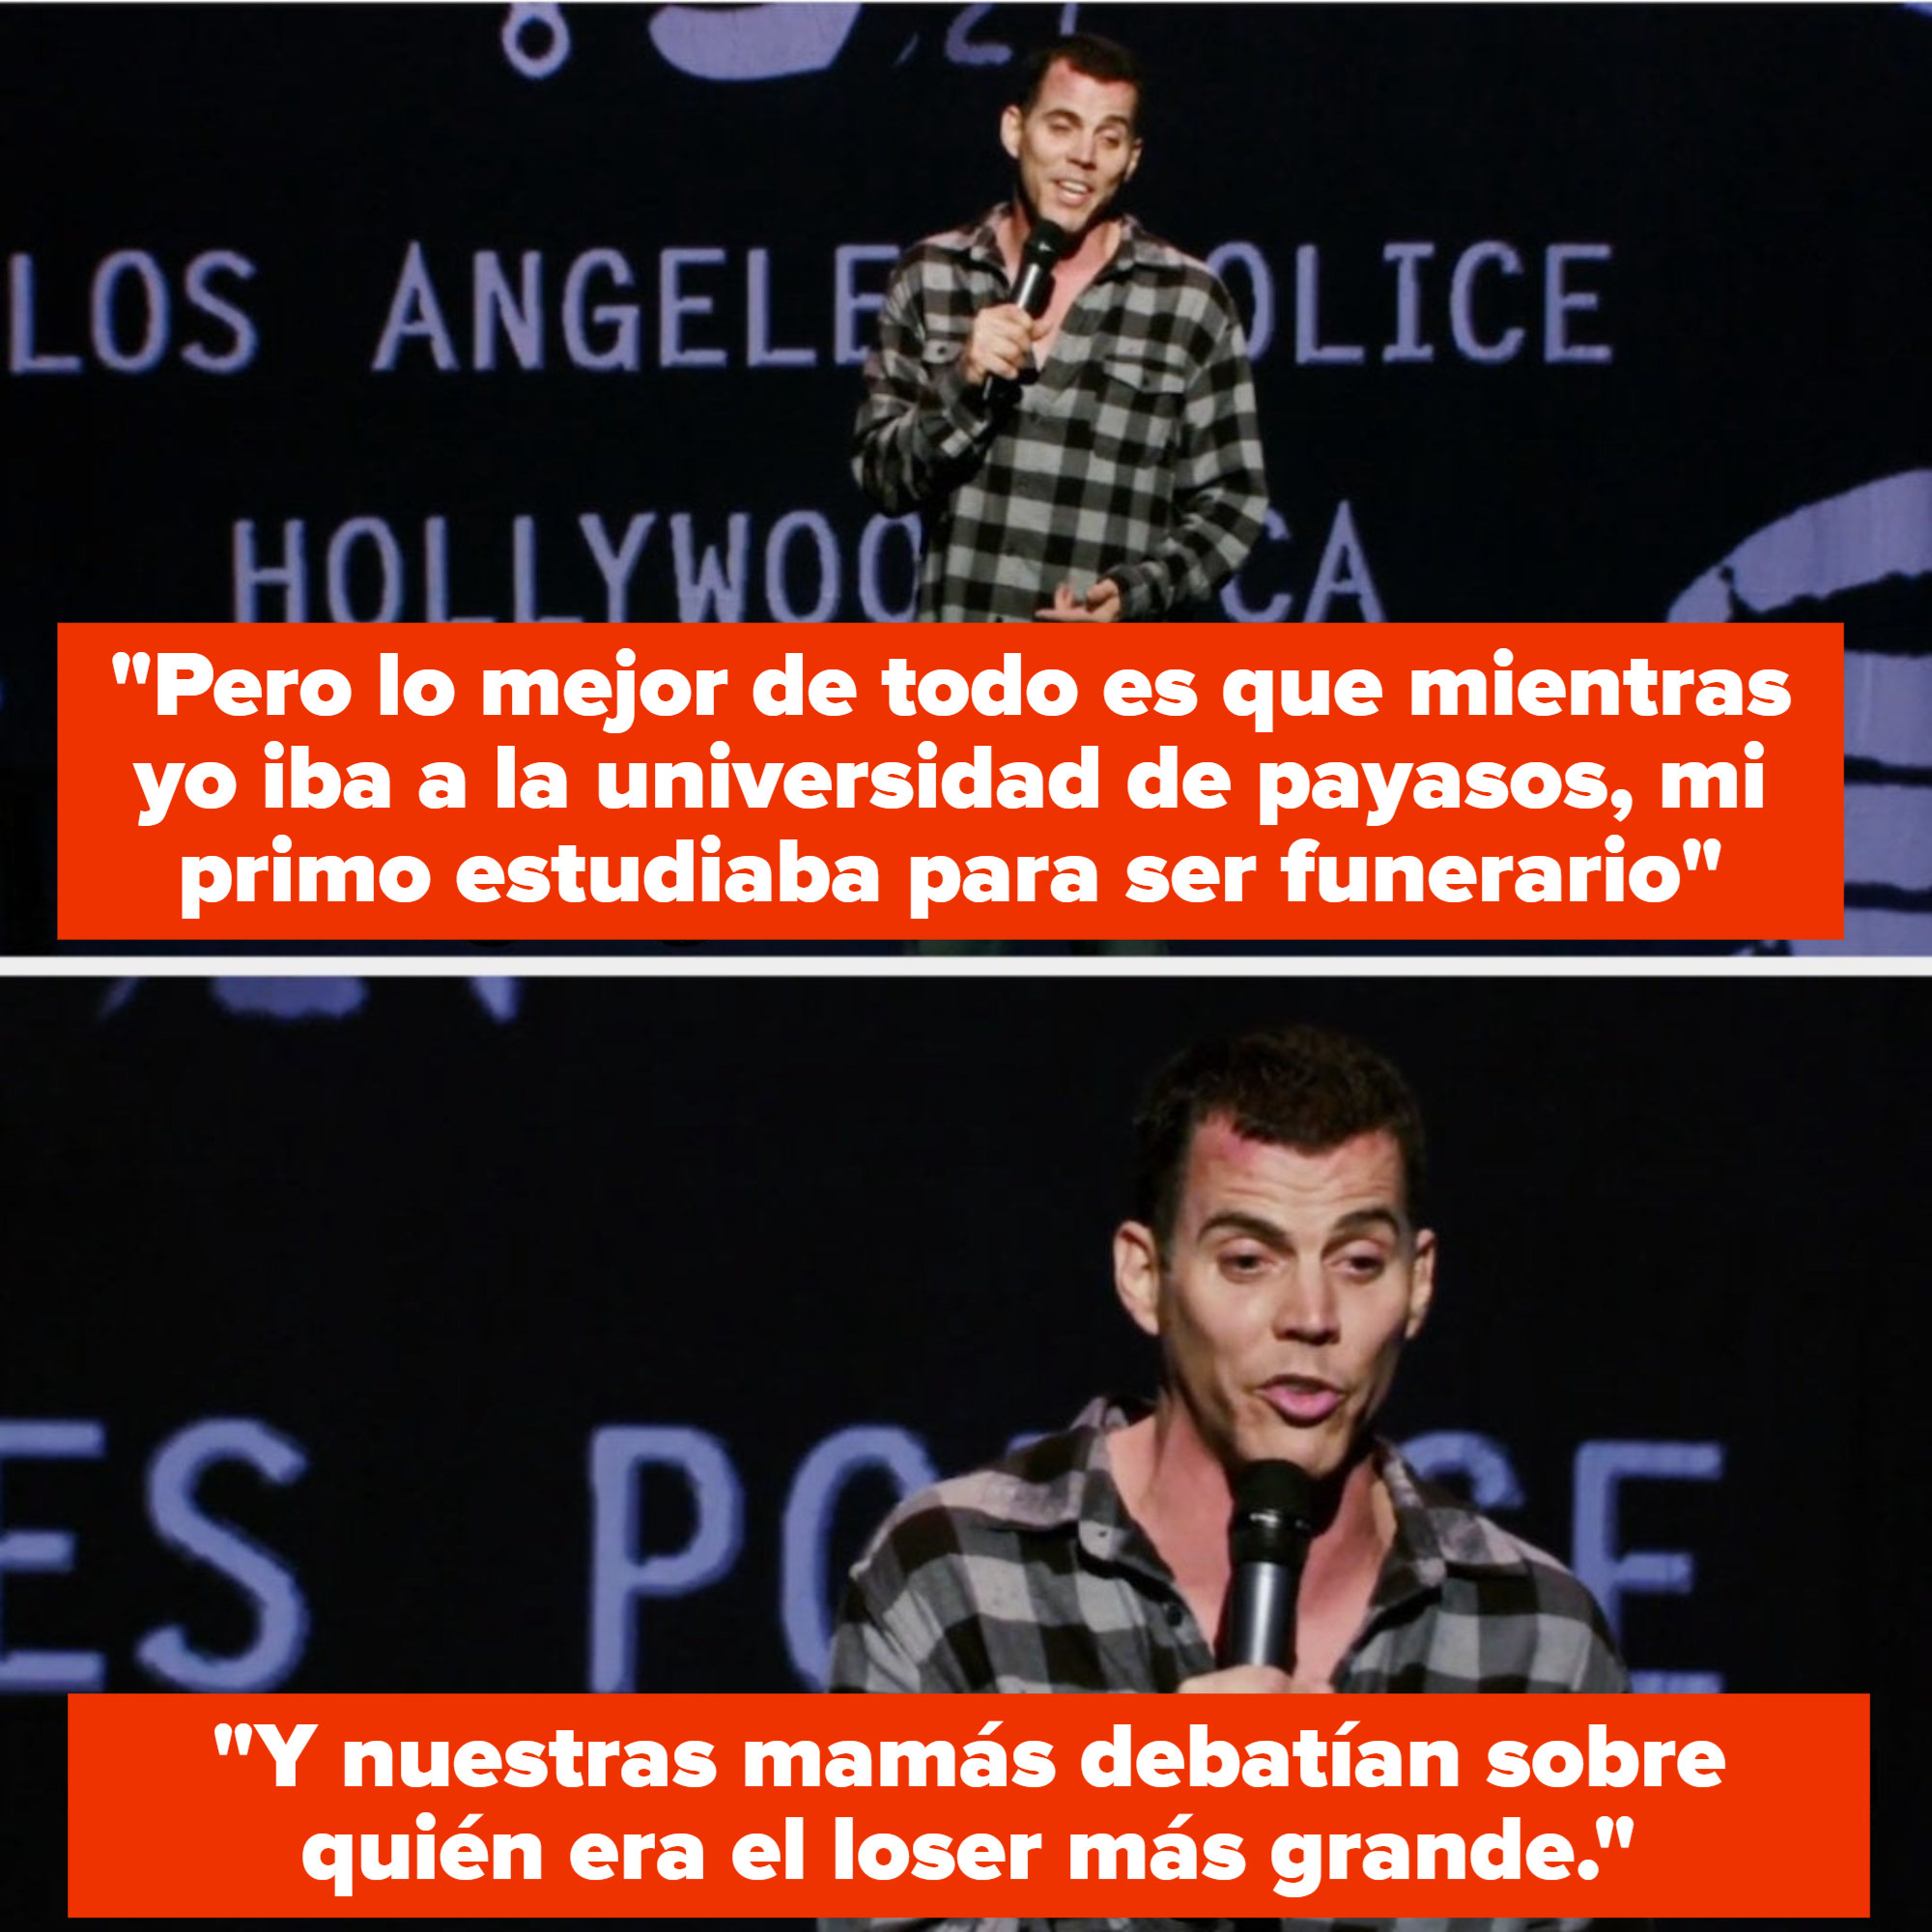 Steve-O says: But the best fucking thing is that when I was going to clown college, my cousin was going to mortician's school. And our mothers were intensely debating whose son was a bigger loser